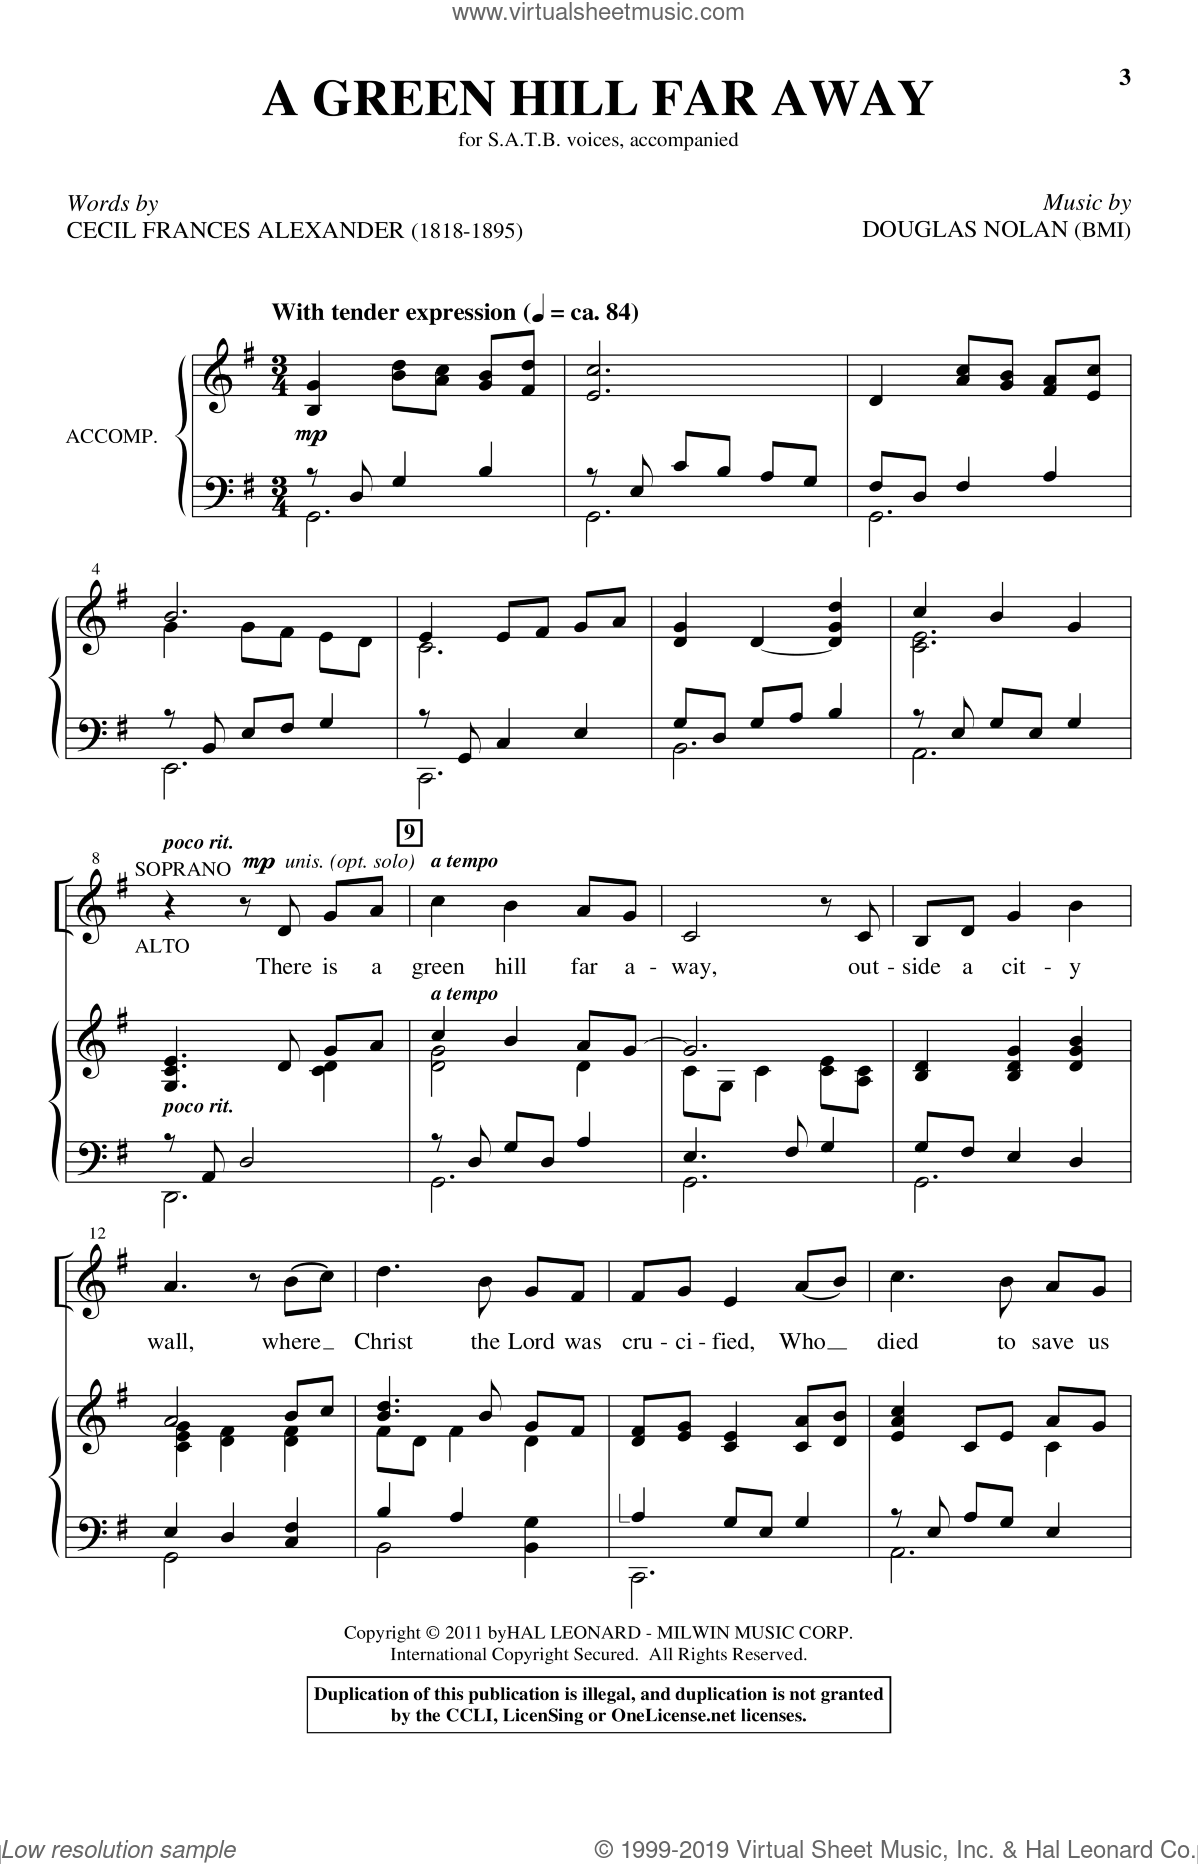 A Green Hill Far Away sheet music for choir and piano (SATB) by Cecil Alexander